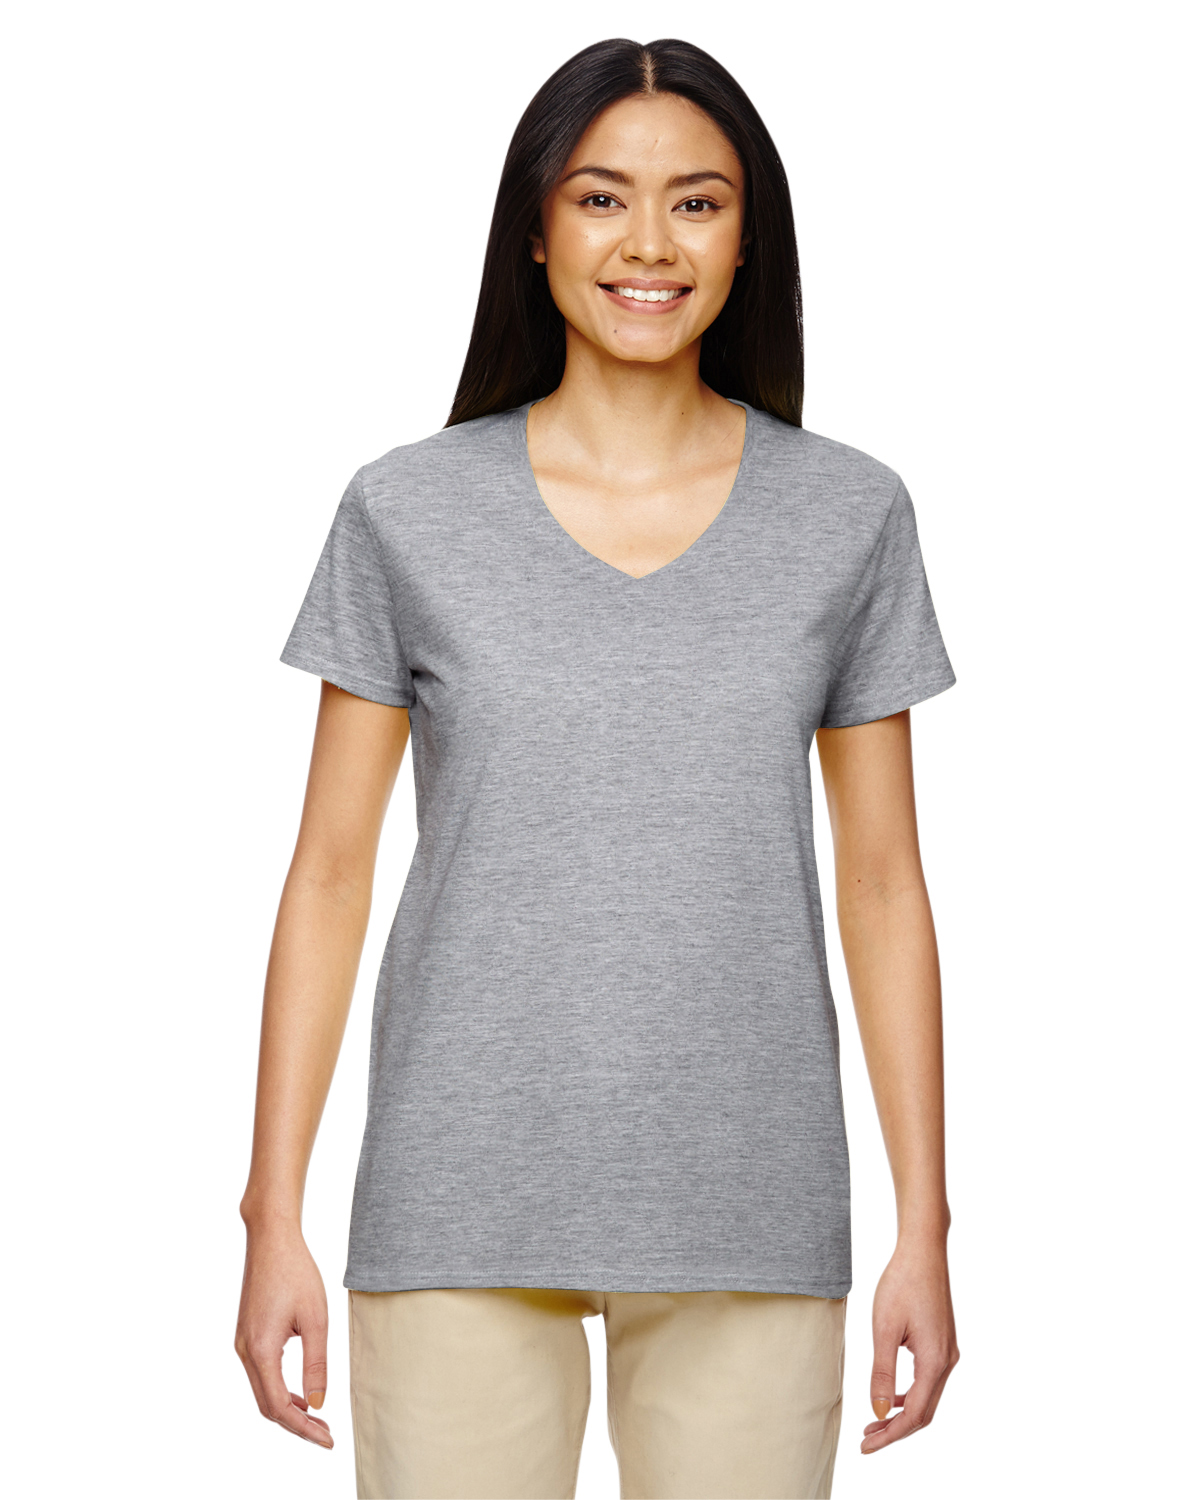 Womens Tops and T-Shirts - Max Mara - Spring Summer